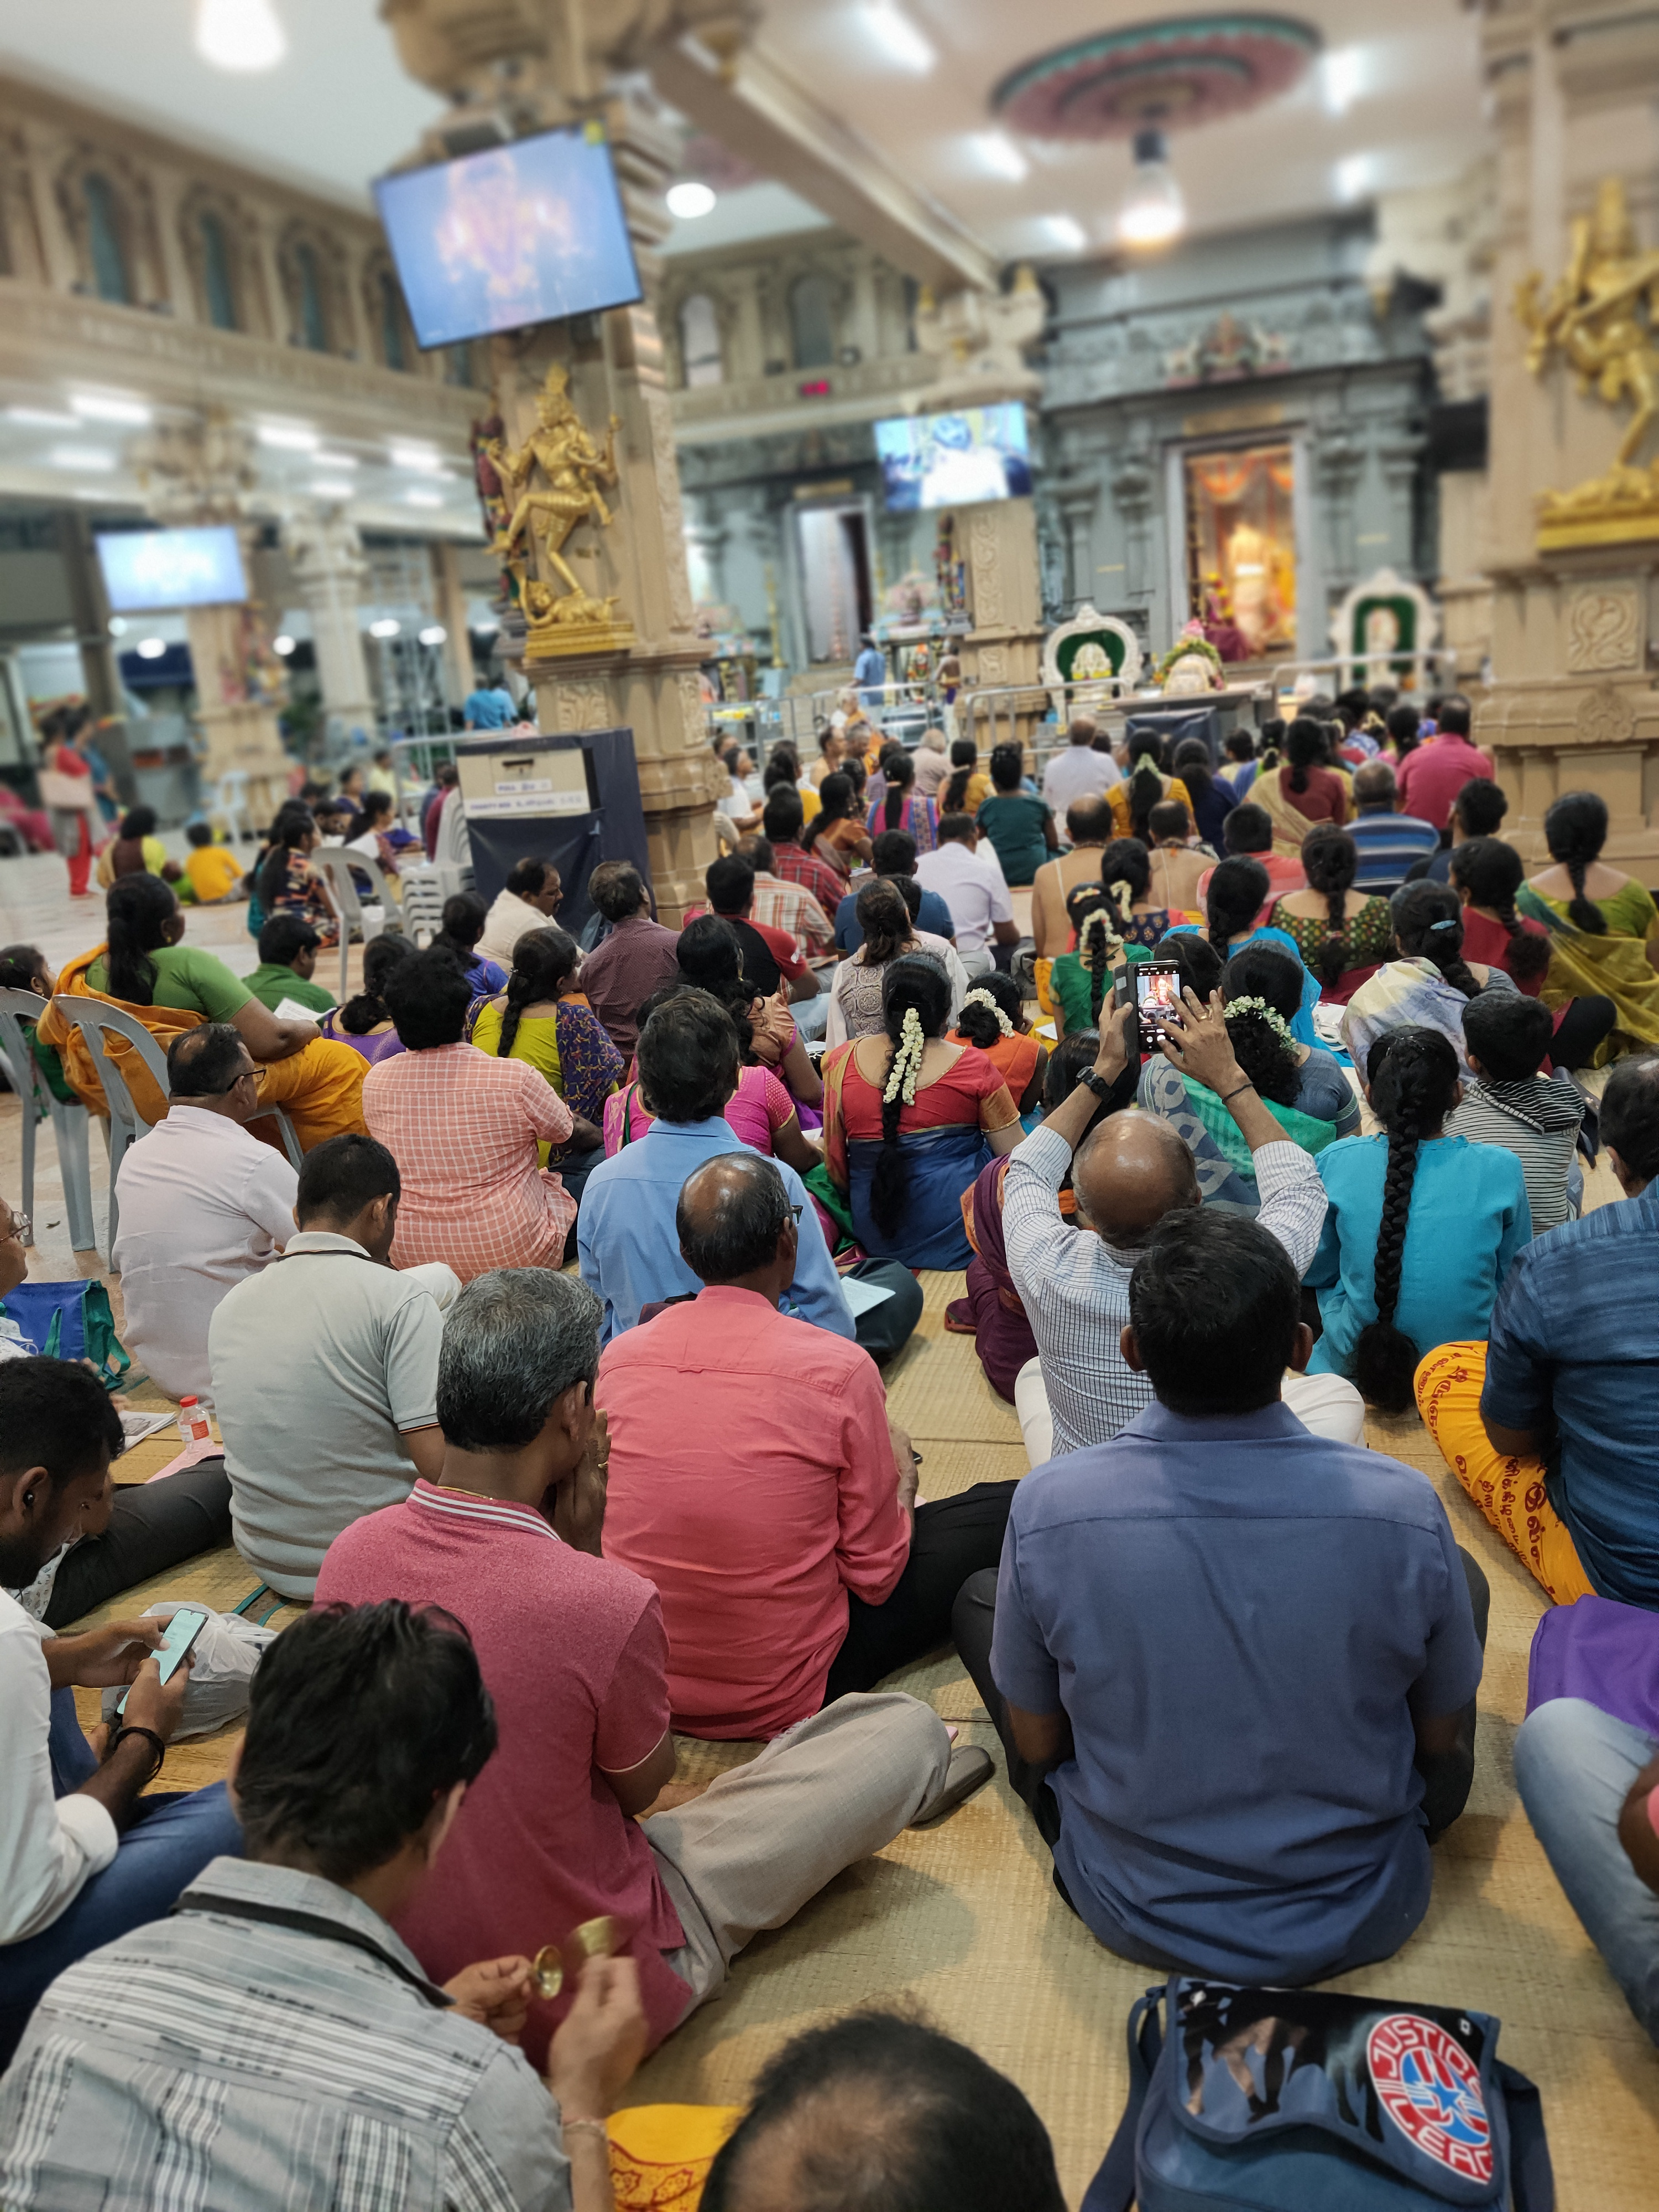 Devotees sit and chant in unison as they watch the prayers being offered to Lord Shiva. Photo:Connected to India